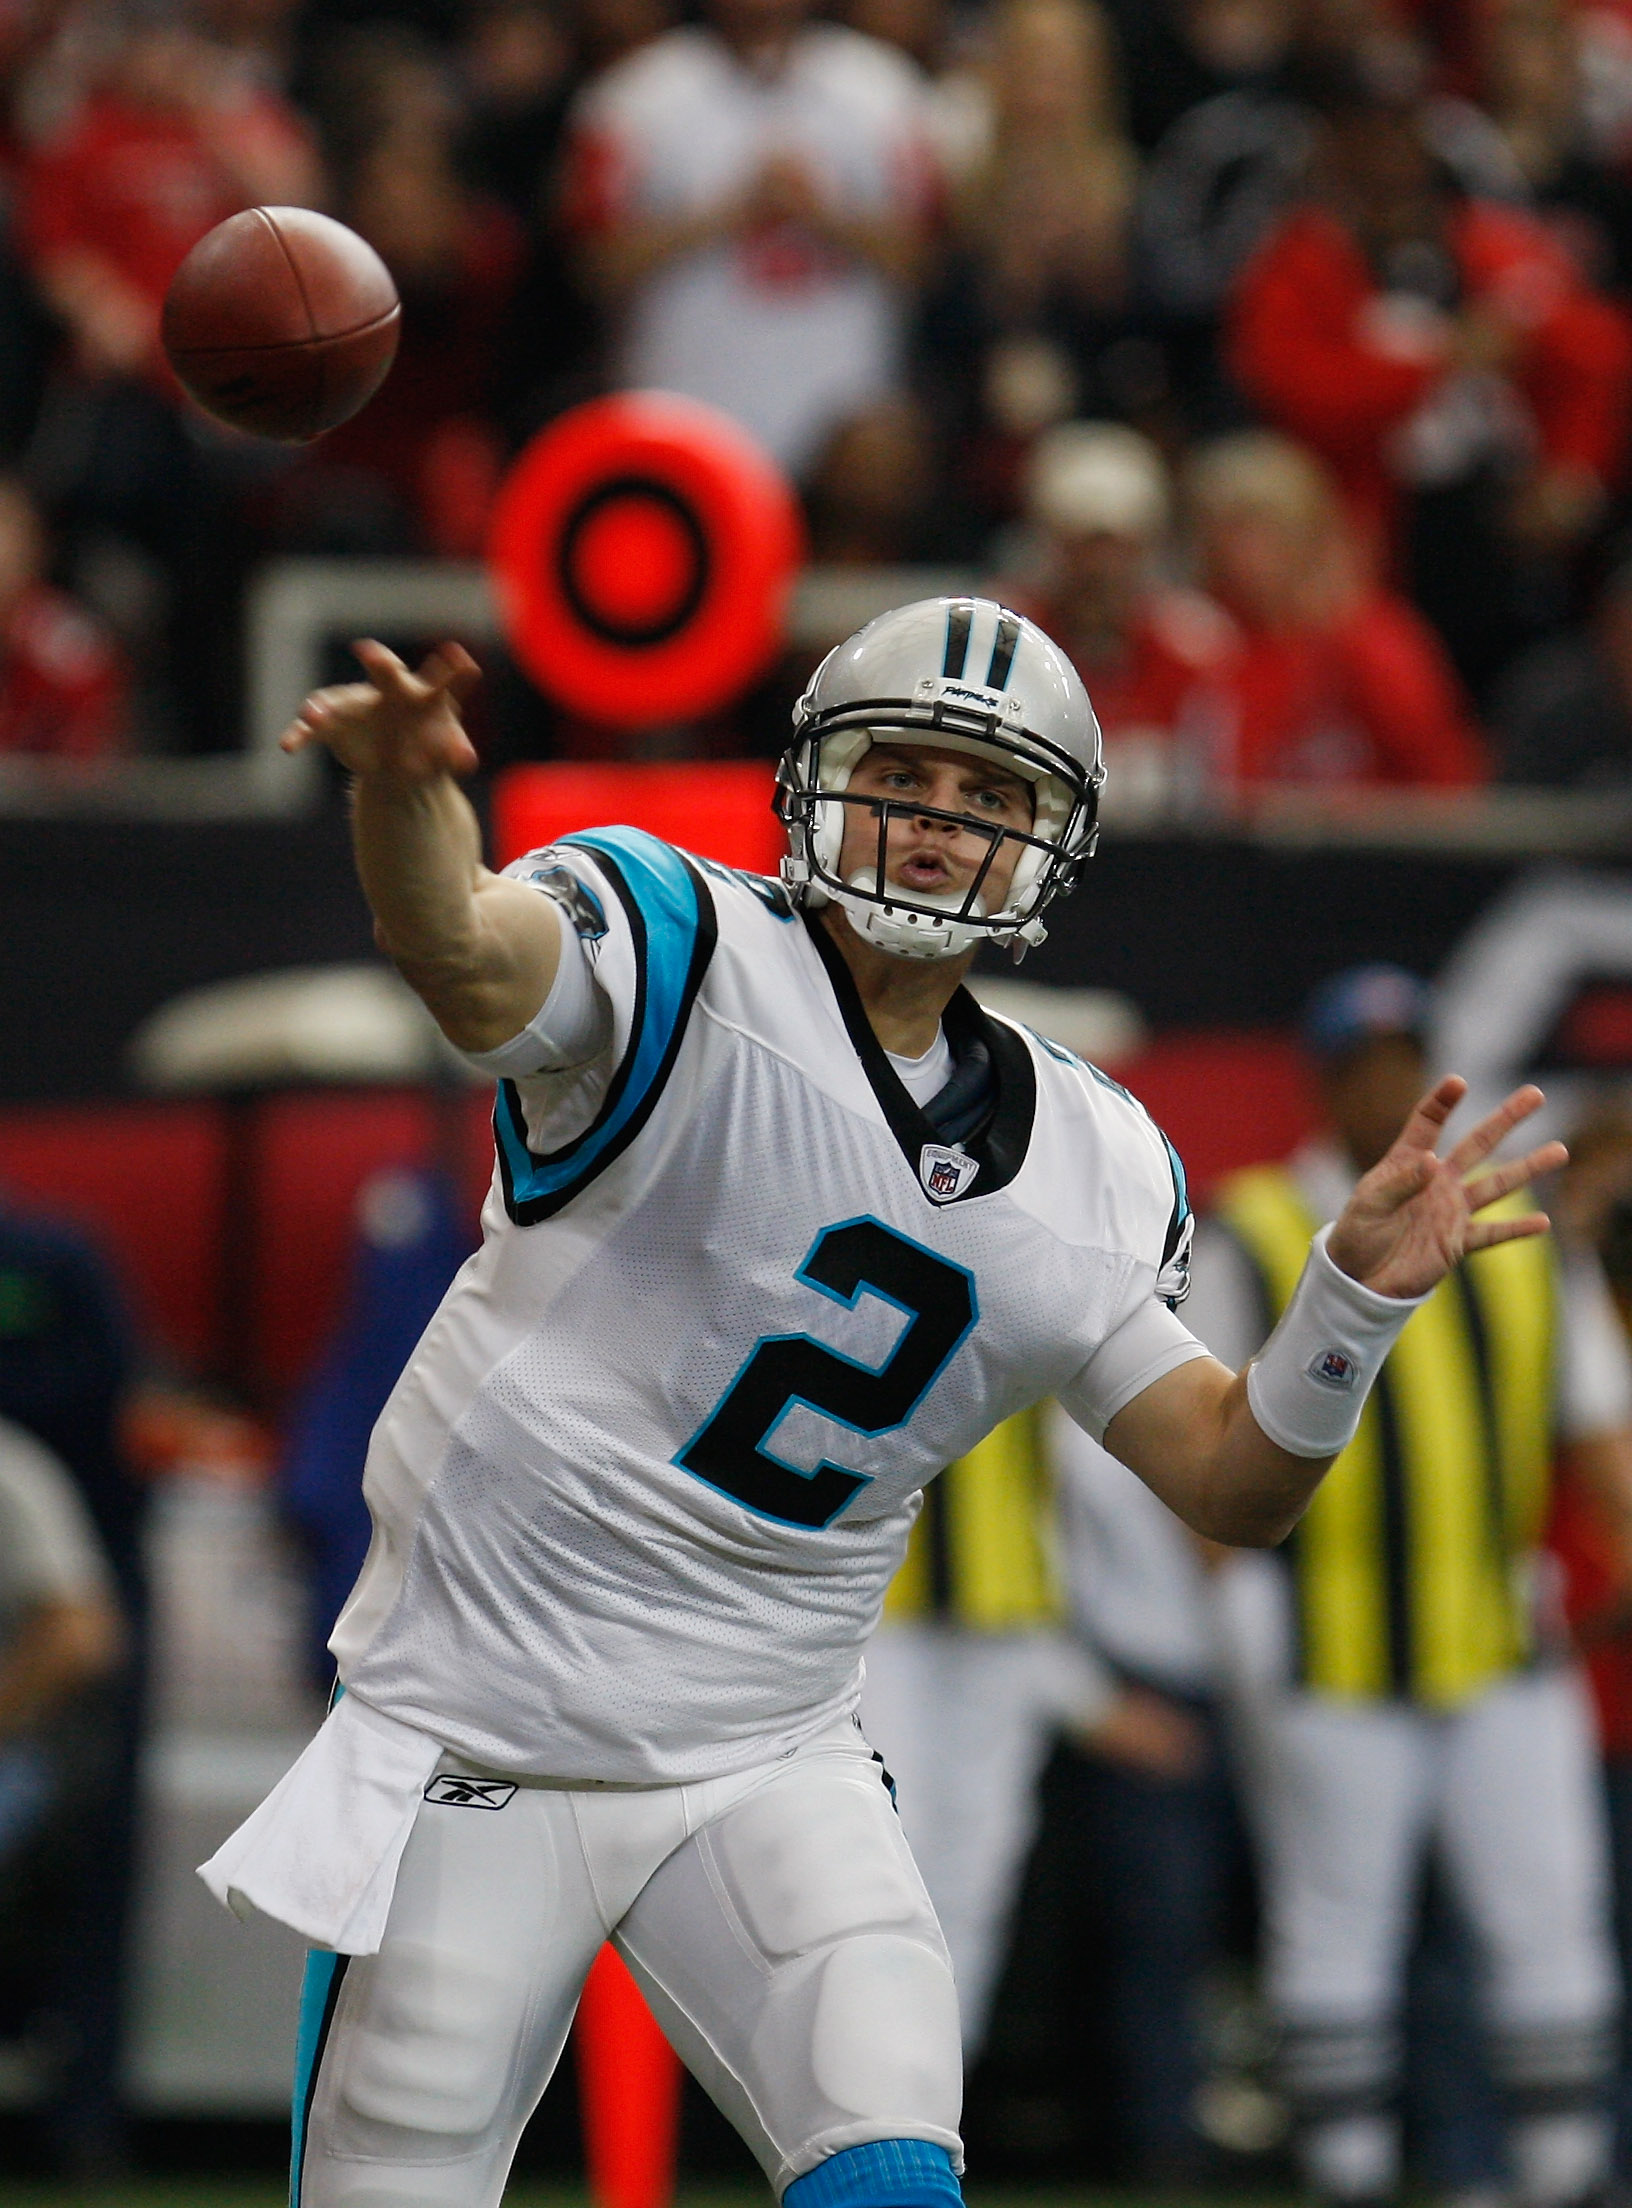 ATLANTA, GA - JANUARY 02:  Jimmy Clausen #2 of the Carolina Panthers throws a pass in the second quarter during their game against the Atlanta Falcons at the Georgia Dome on January 2, 2011 in Atlanta, Georgia.  (Photo by Scott Halleran/Getty Images)